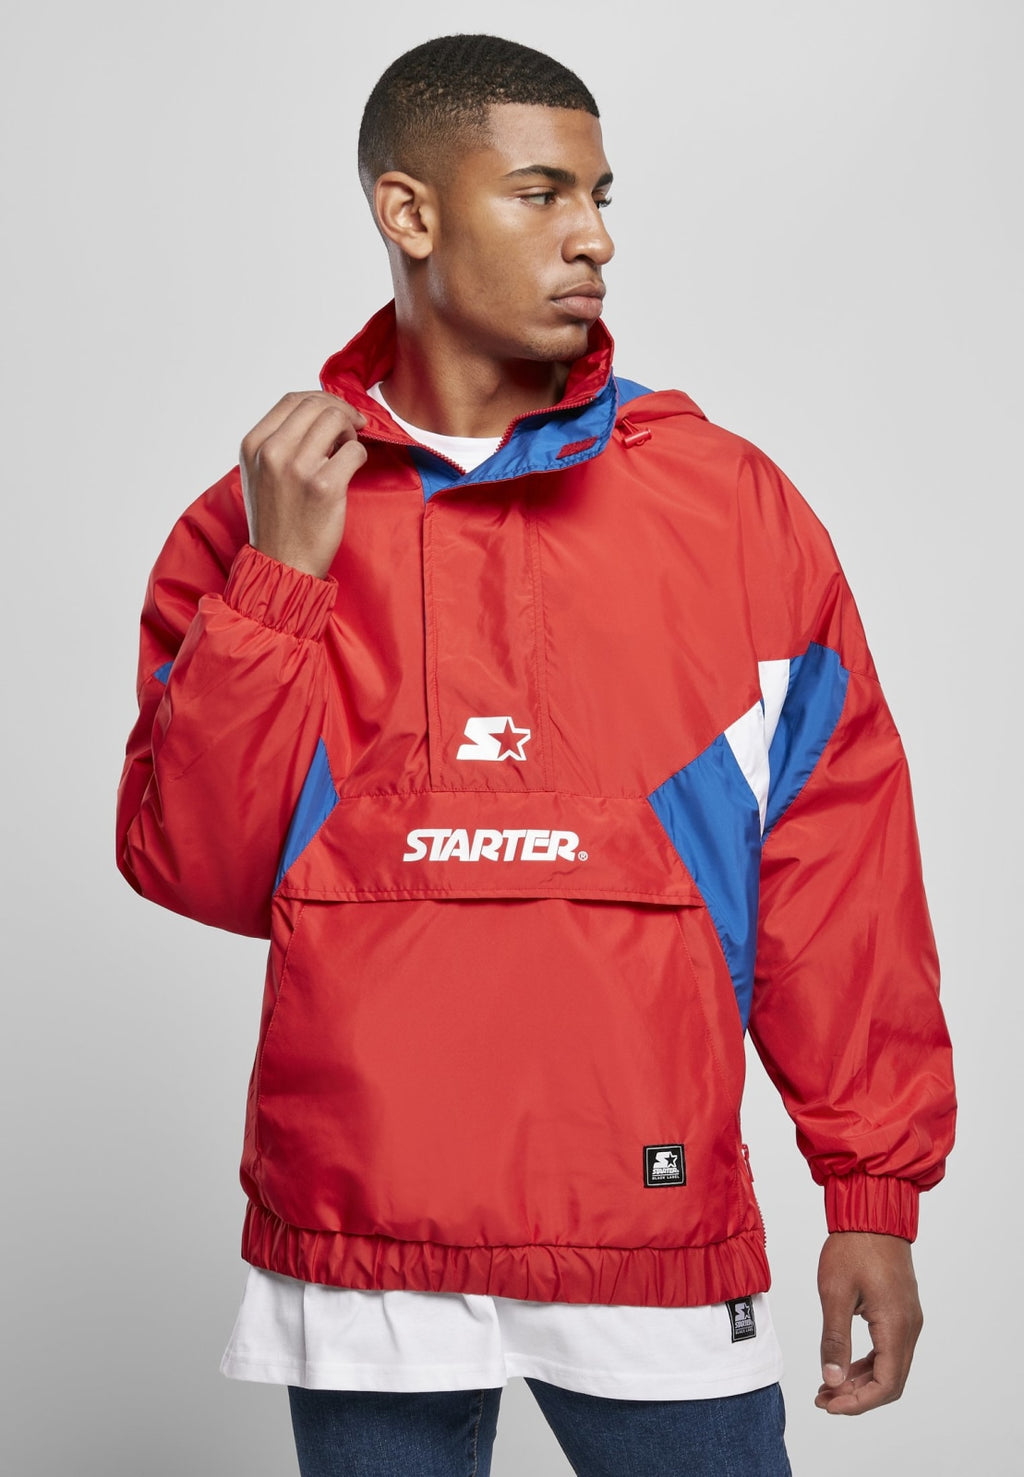 Starter Retro Windbreaker - City Red/sporty Blue/white Windbreaker Starter